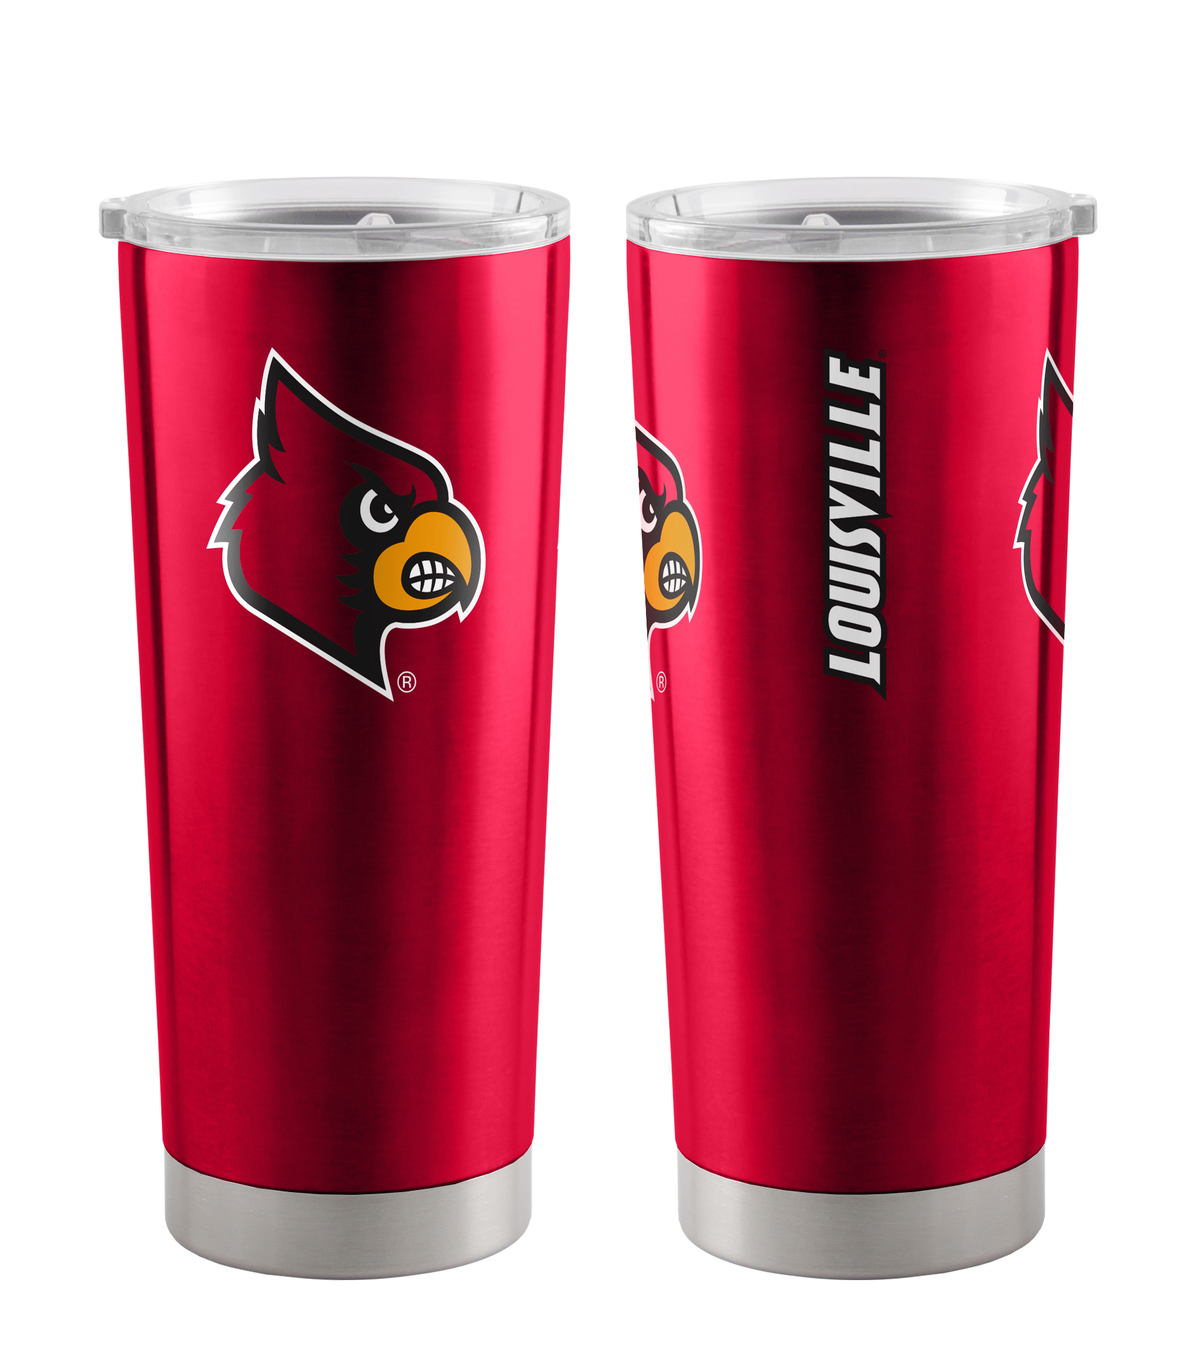 University of Louisville 20 oz Insulated Stainless Steel Tumbler